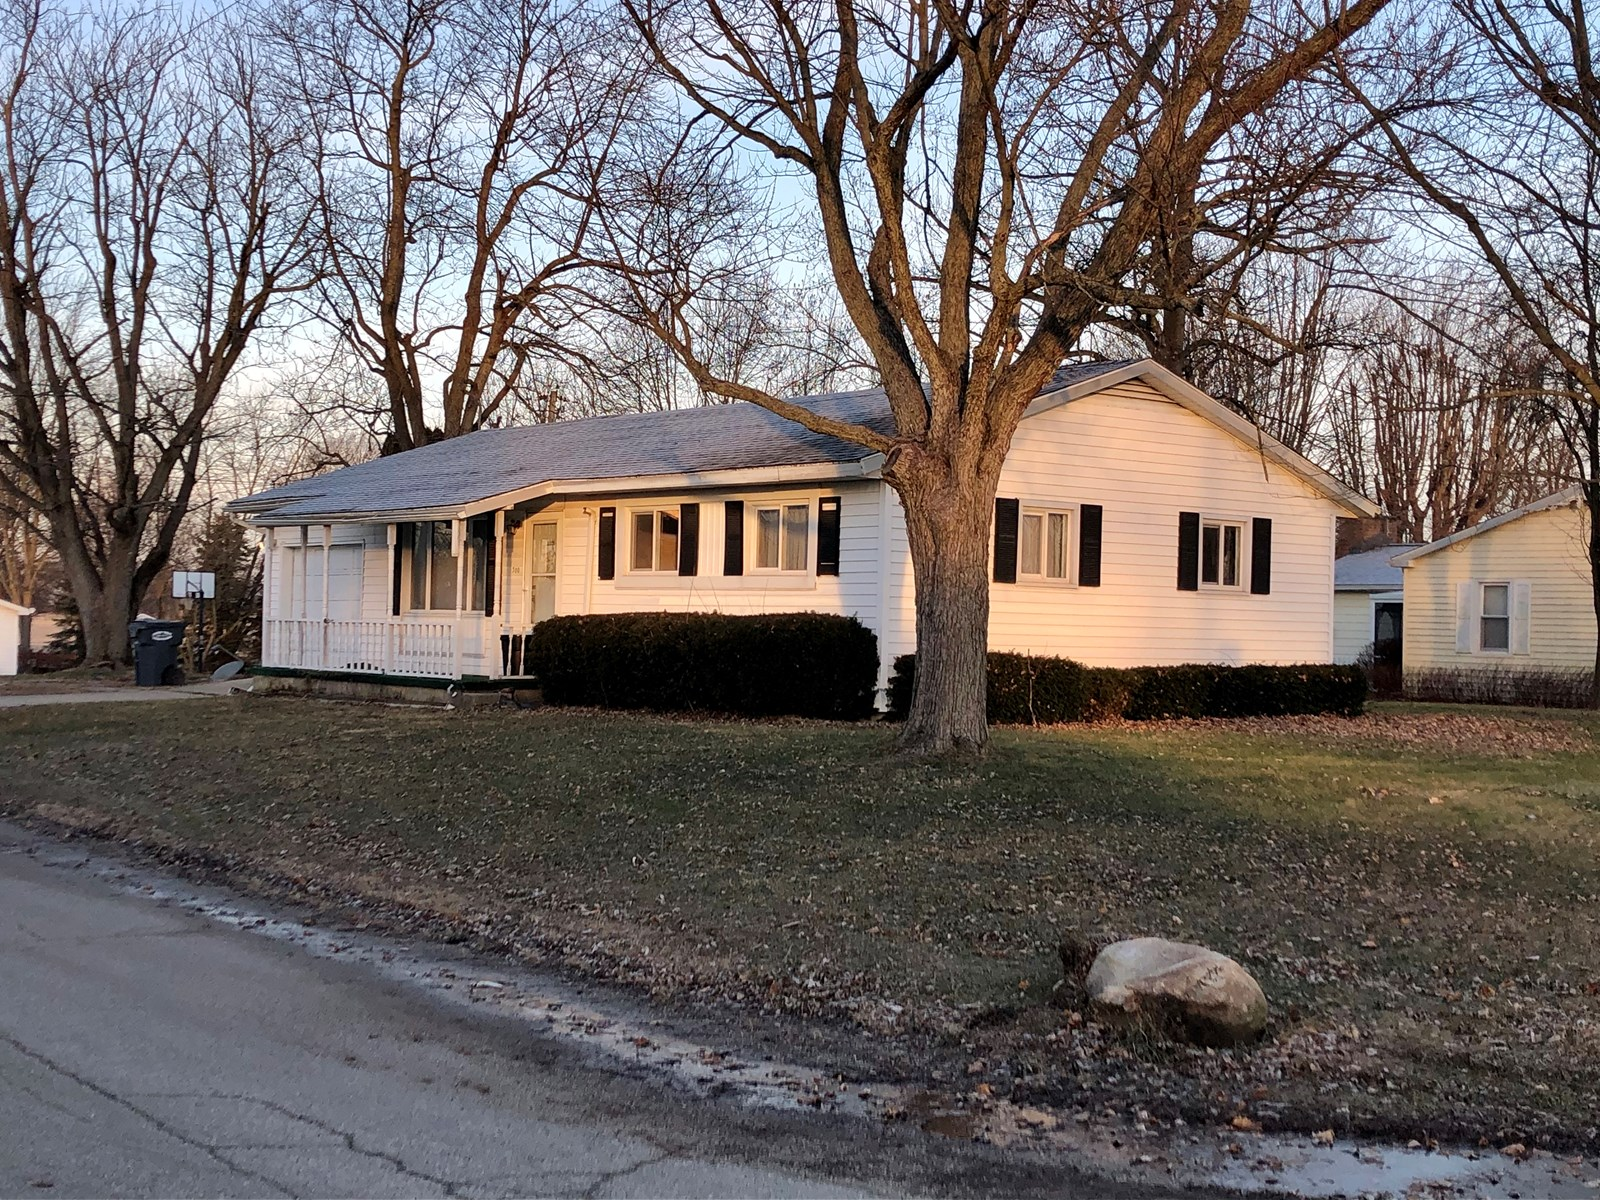 Home for Sale Farmland, Indiana